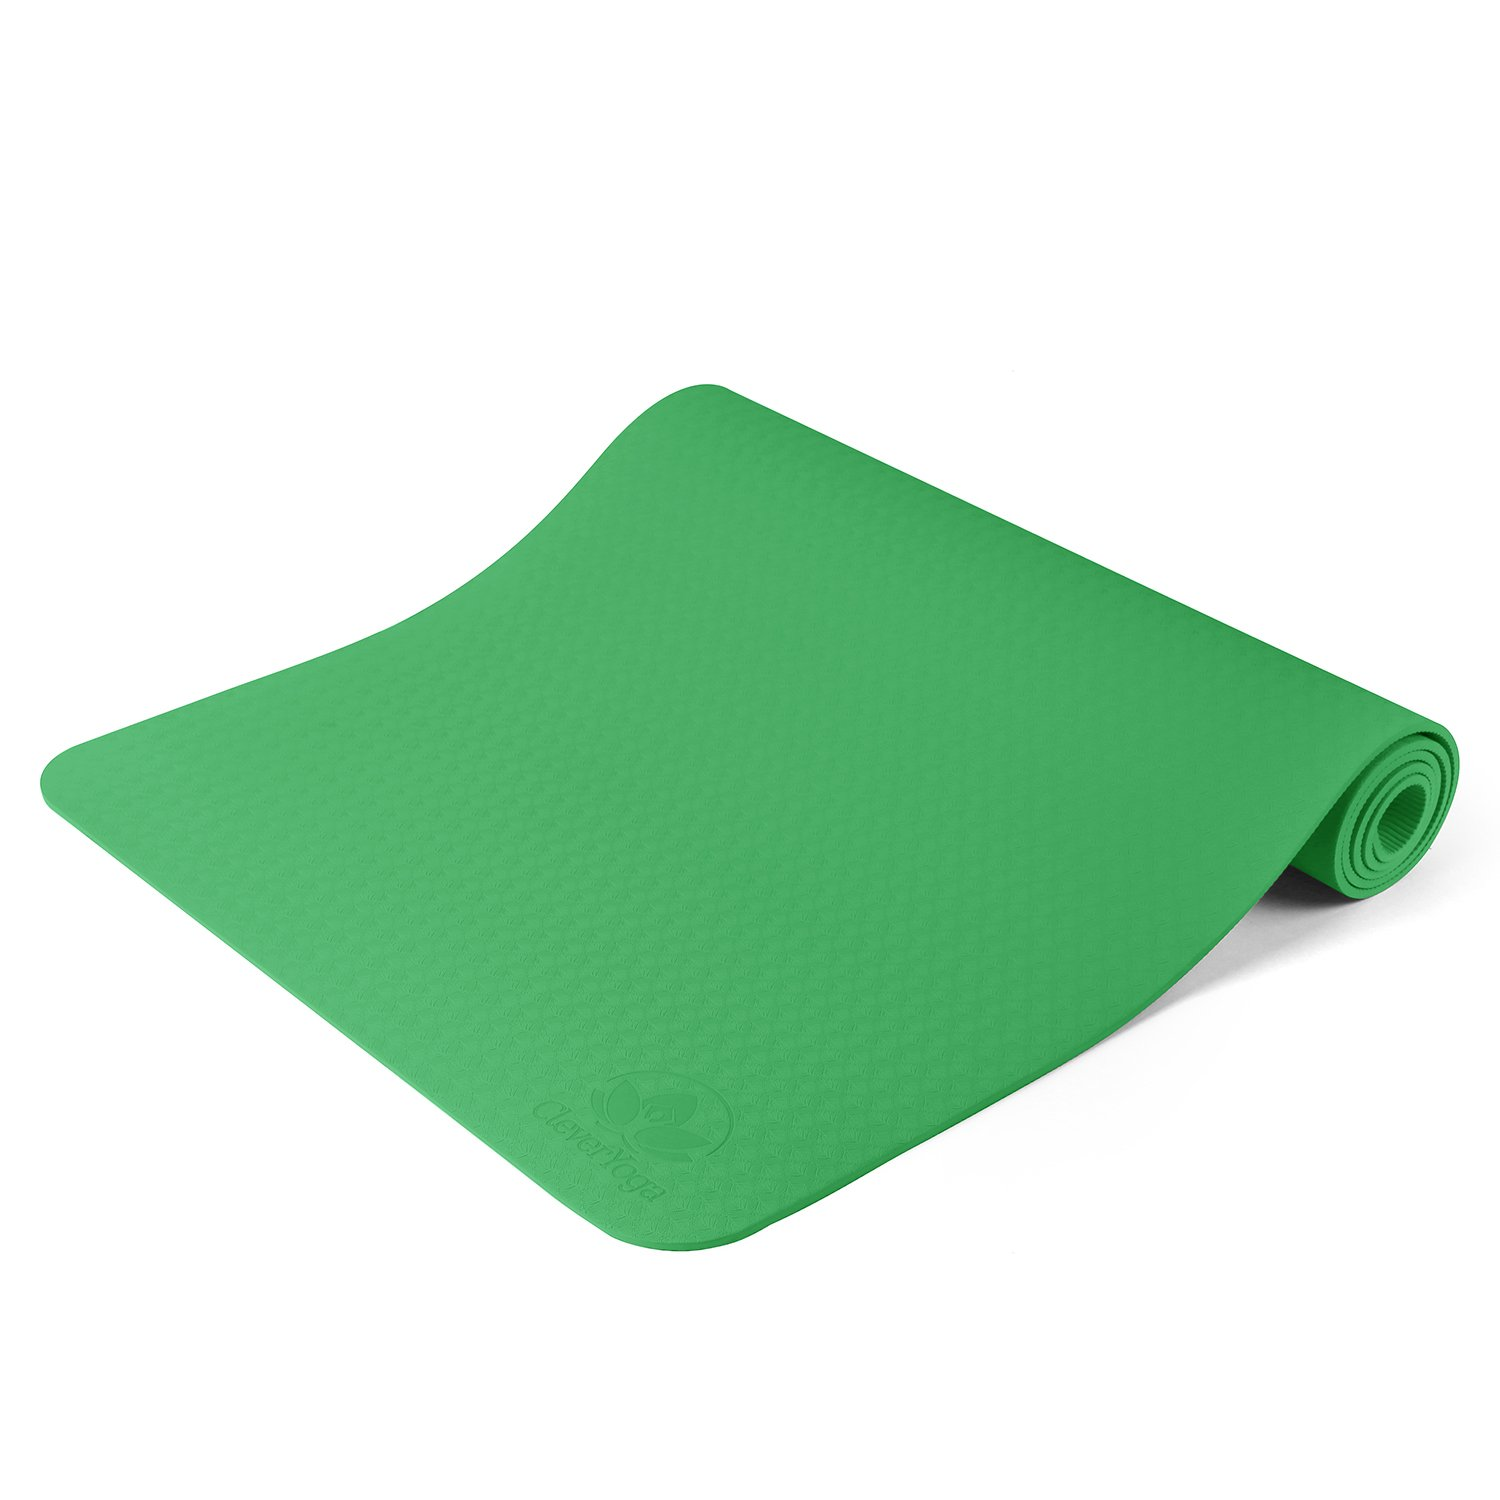 Non Slip Yoga Mat - Longer And Wider Than Other Exercise Mats - ¼-Inch Thick High Density Padding To Avoid Sore Knees During Pilates, Stretching & Toning Workouts - For Men & Women - From Clever Yoga